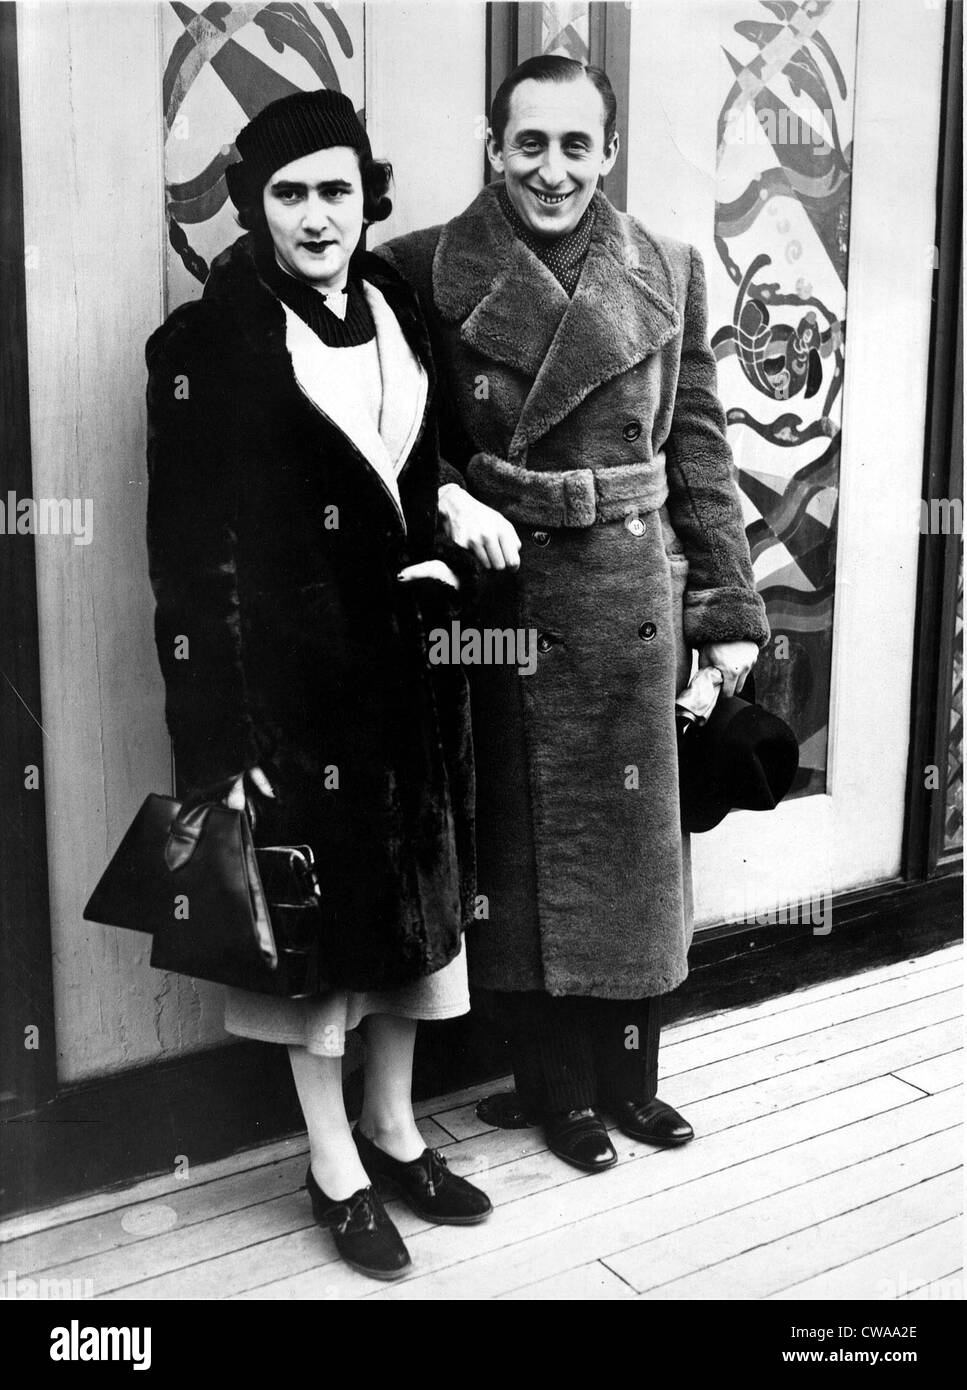 VLADIMIR & WANDA HOROWITZ-Arrival in New York on the S.S Rex. 1934. Courtesy: CSU Archives / Everett Collection - Stock Image